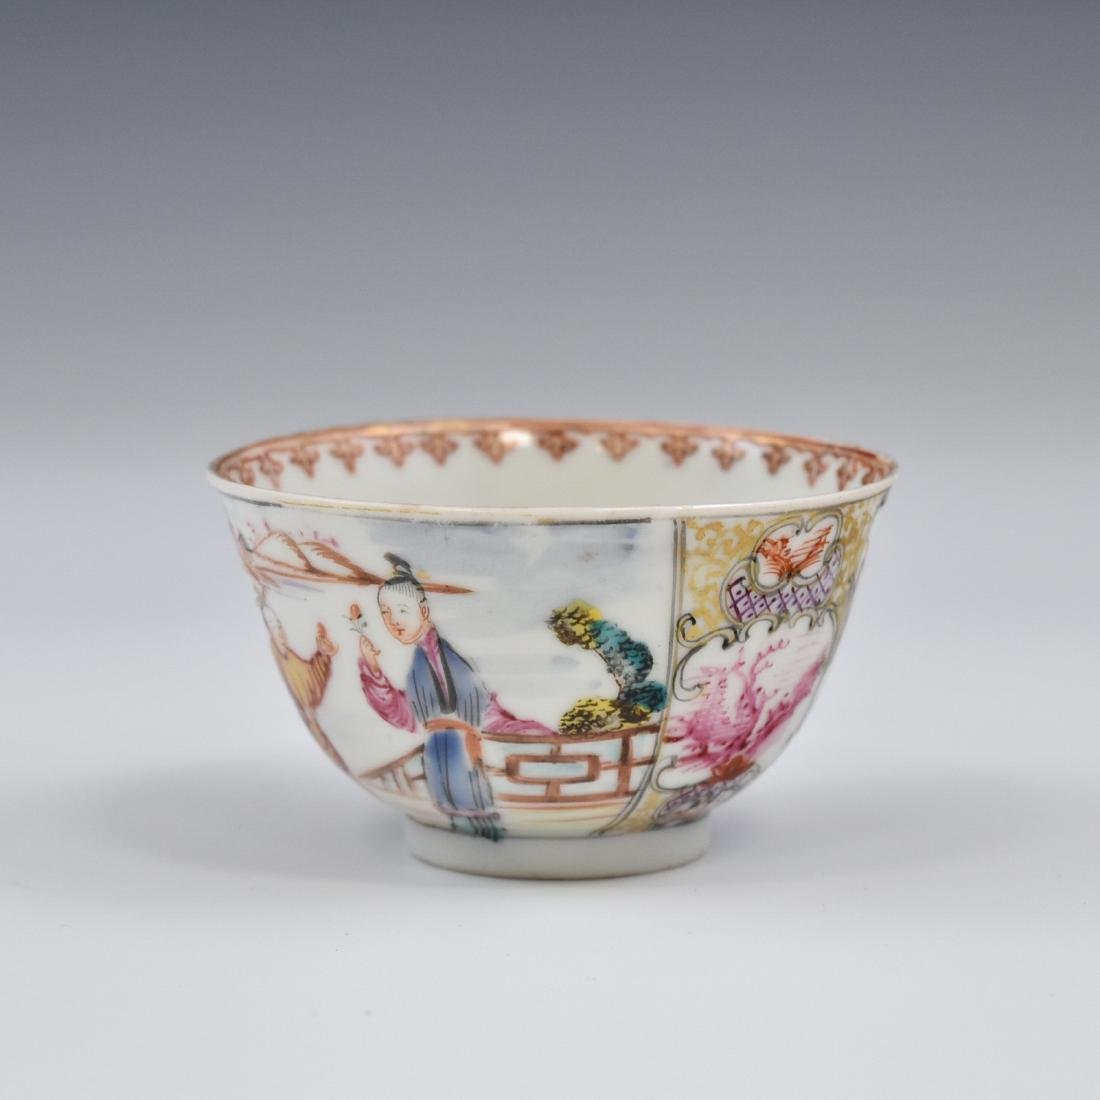 CHINESE EXPORT FAMILLE ROSE AND GILT PORCELAIN TEA CUP